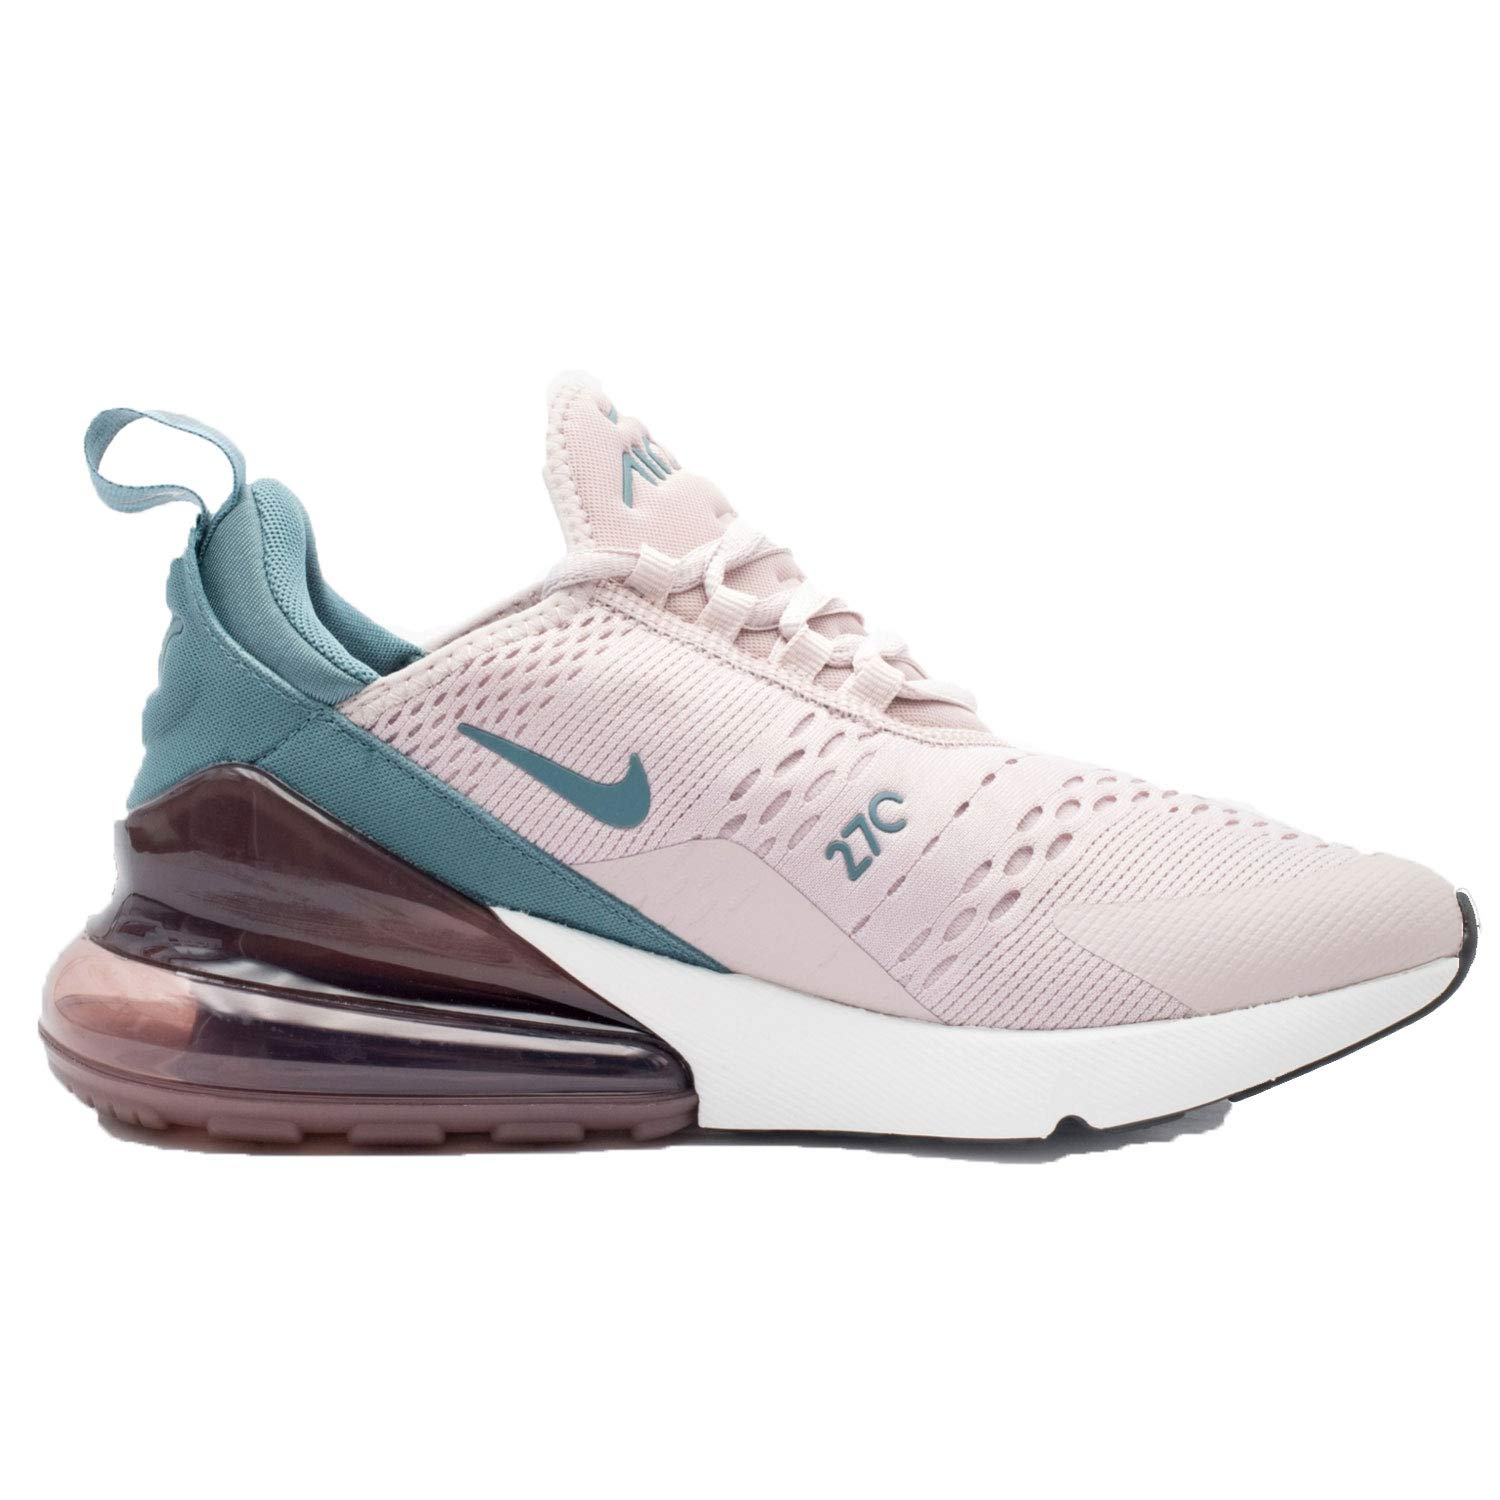 Ongekend Amazon.com | Nike Air Max 270 Womens Style: AH6789-602 Size: 9 DP-04